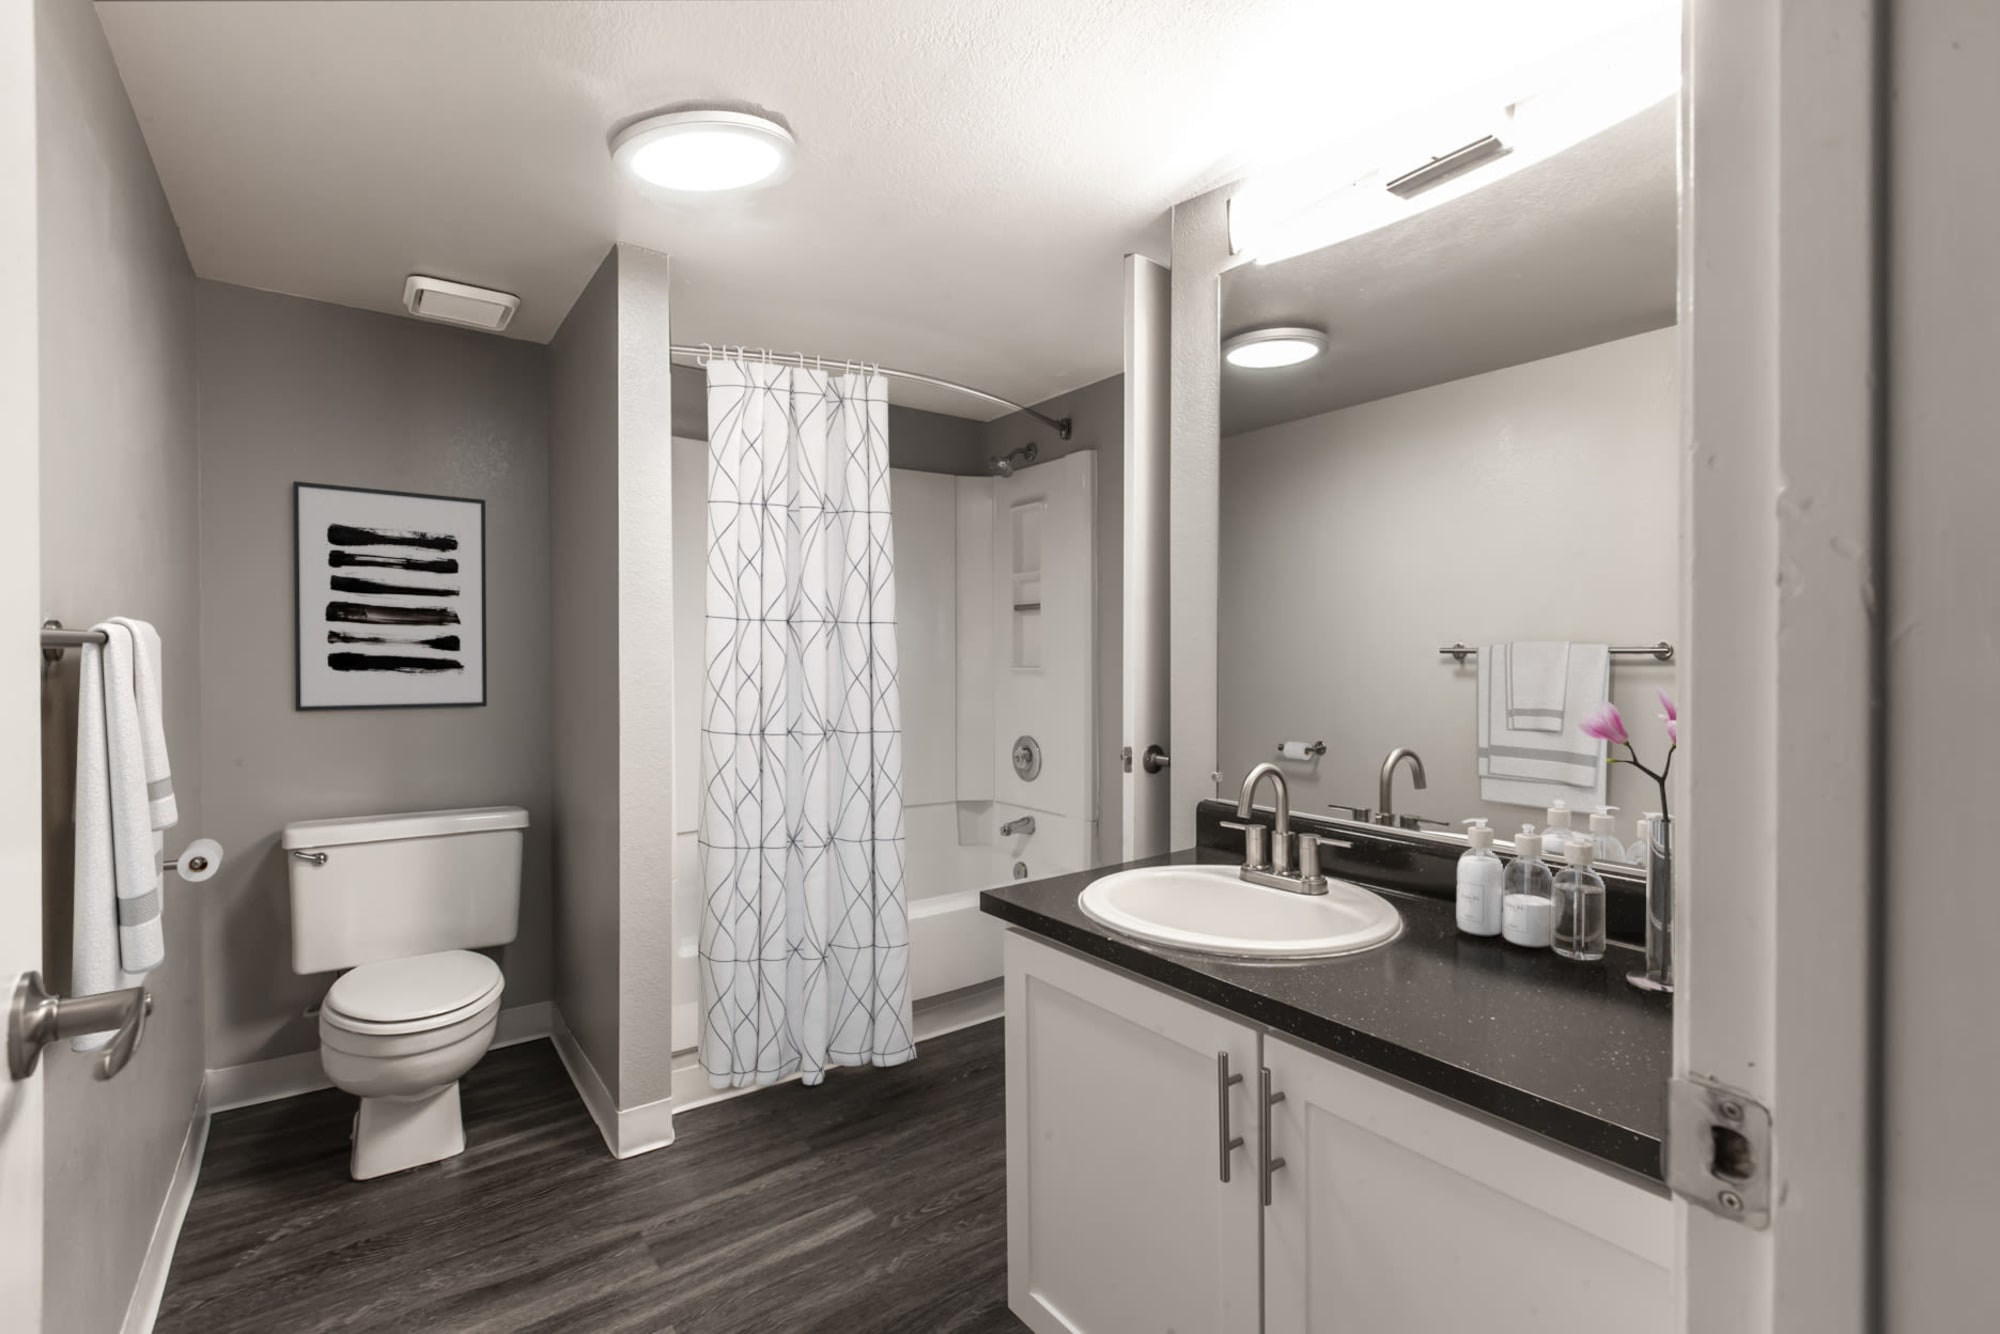 Roomy bathroom with a tub and shower at Bennington Apartments in Fairfield, California